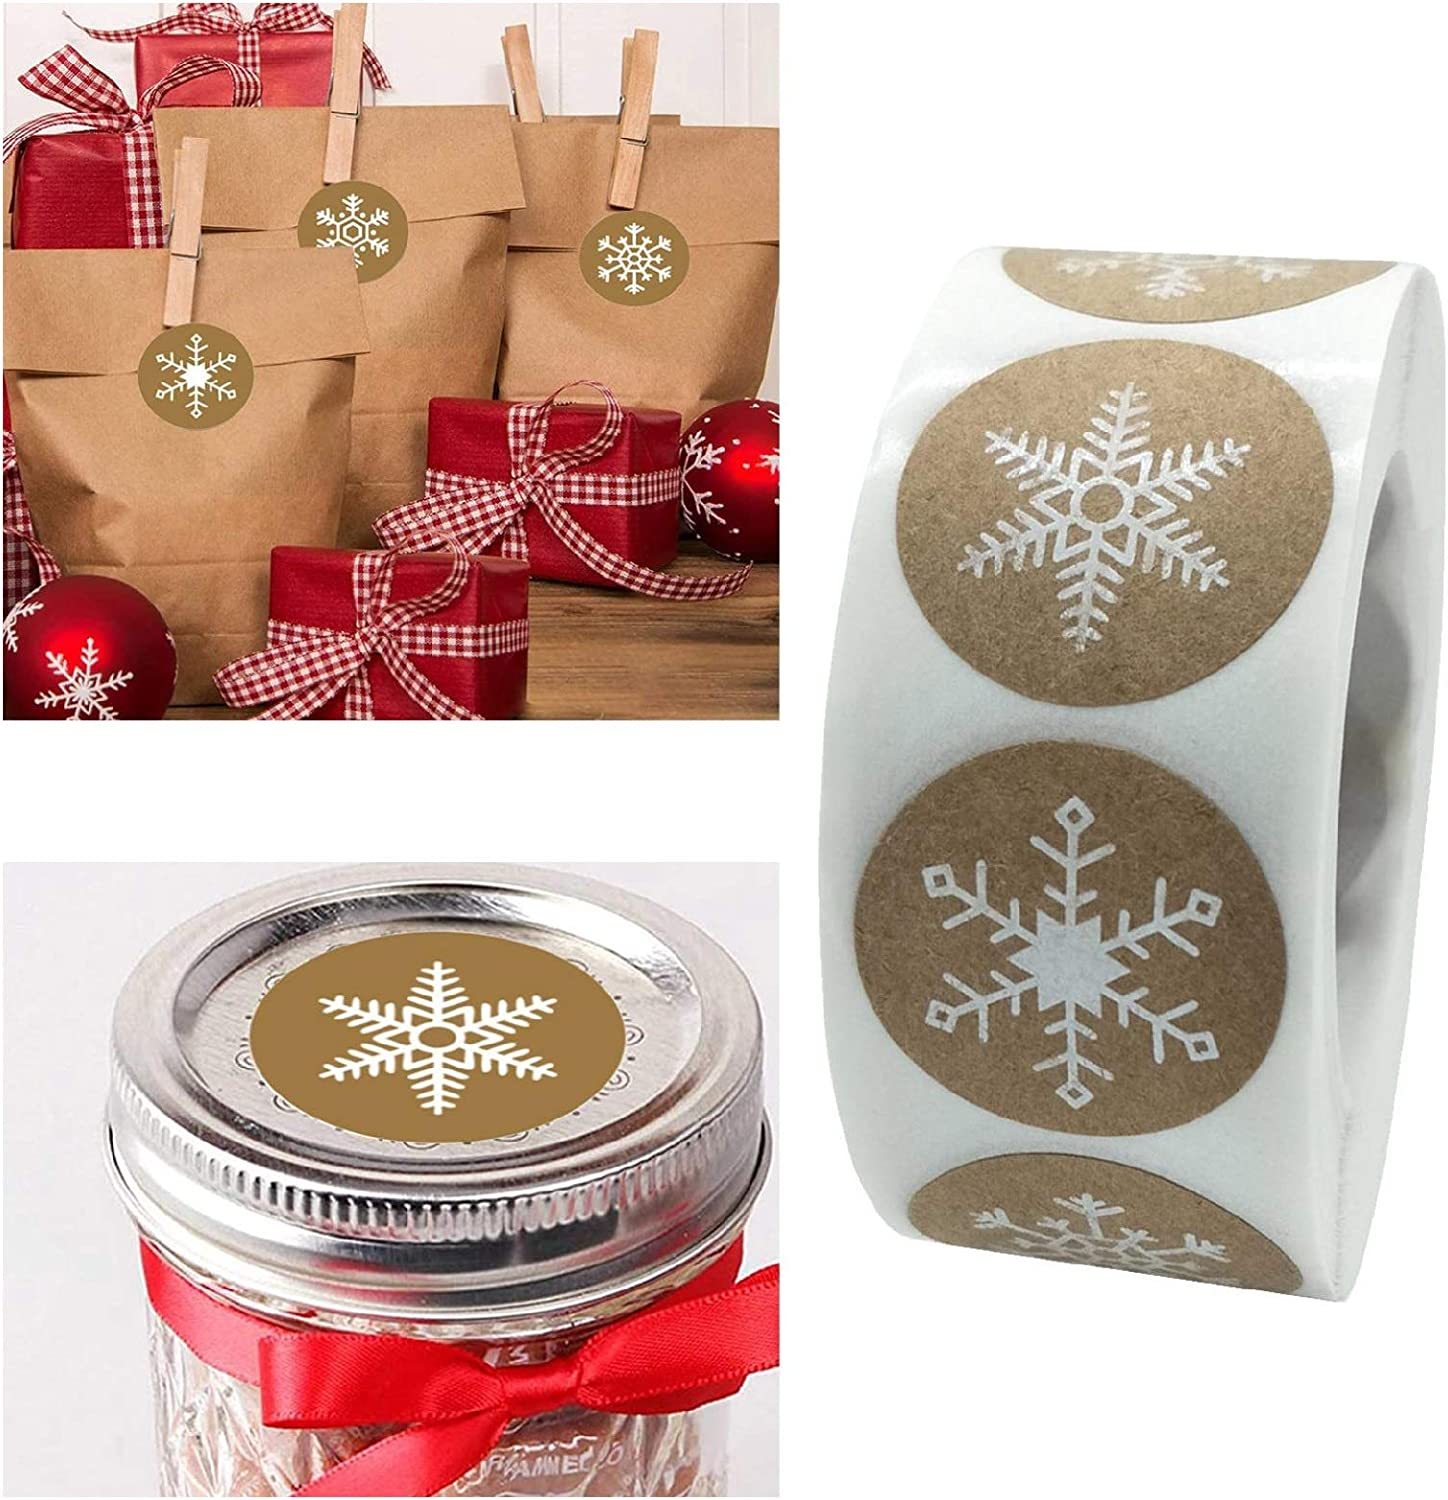 Christmas Stickers,Christmas Roll Pack Sticker, 500 Pieces Round Adhesive Labels for Cards Envelope Gift Boxes Decorative Sealing Stickers,Holiday Wedding Party Favors Supplies (F)